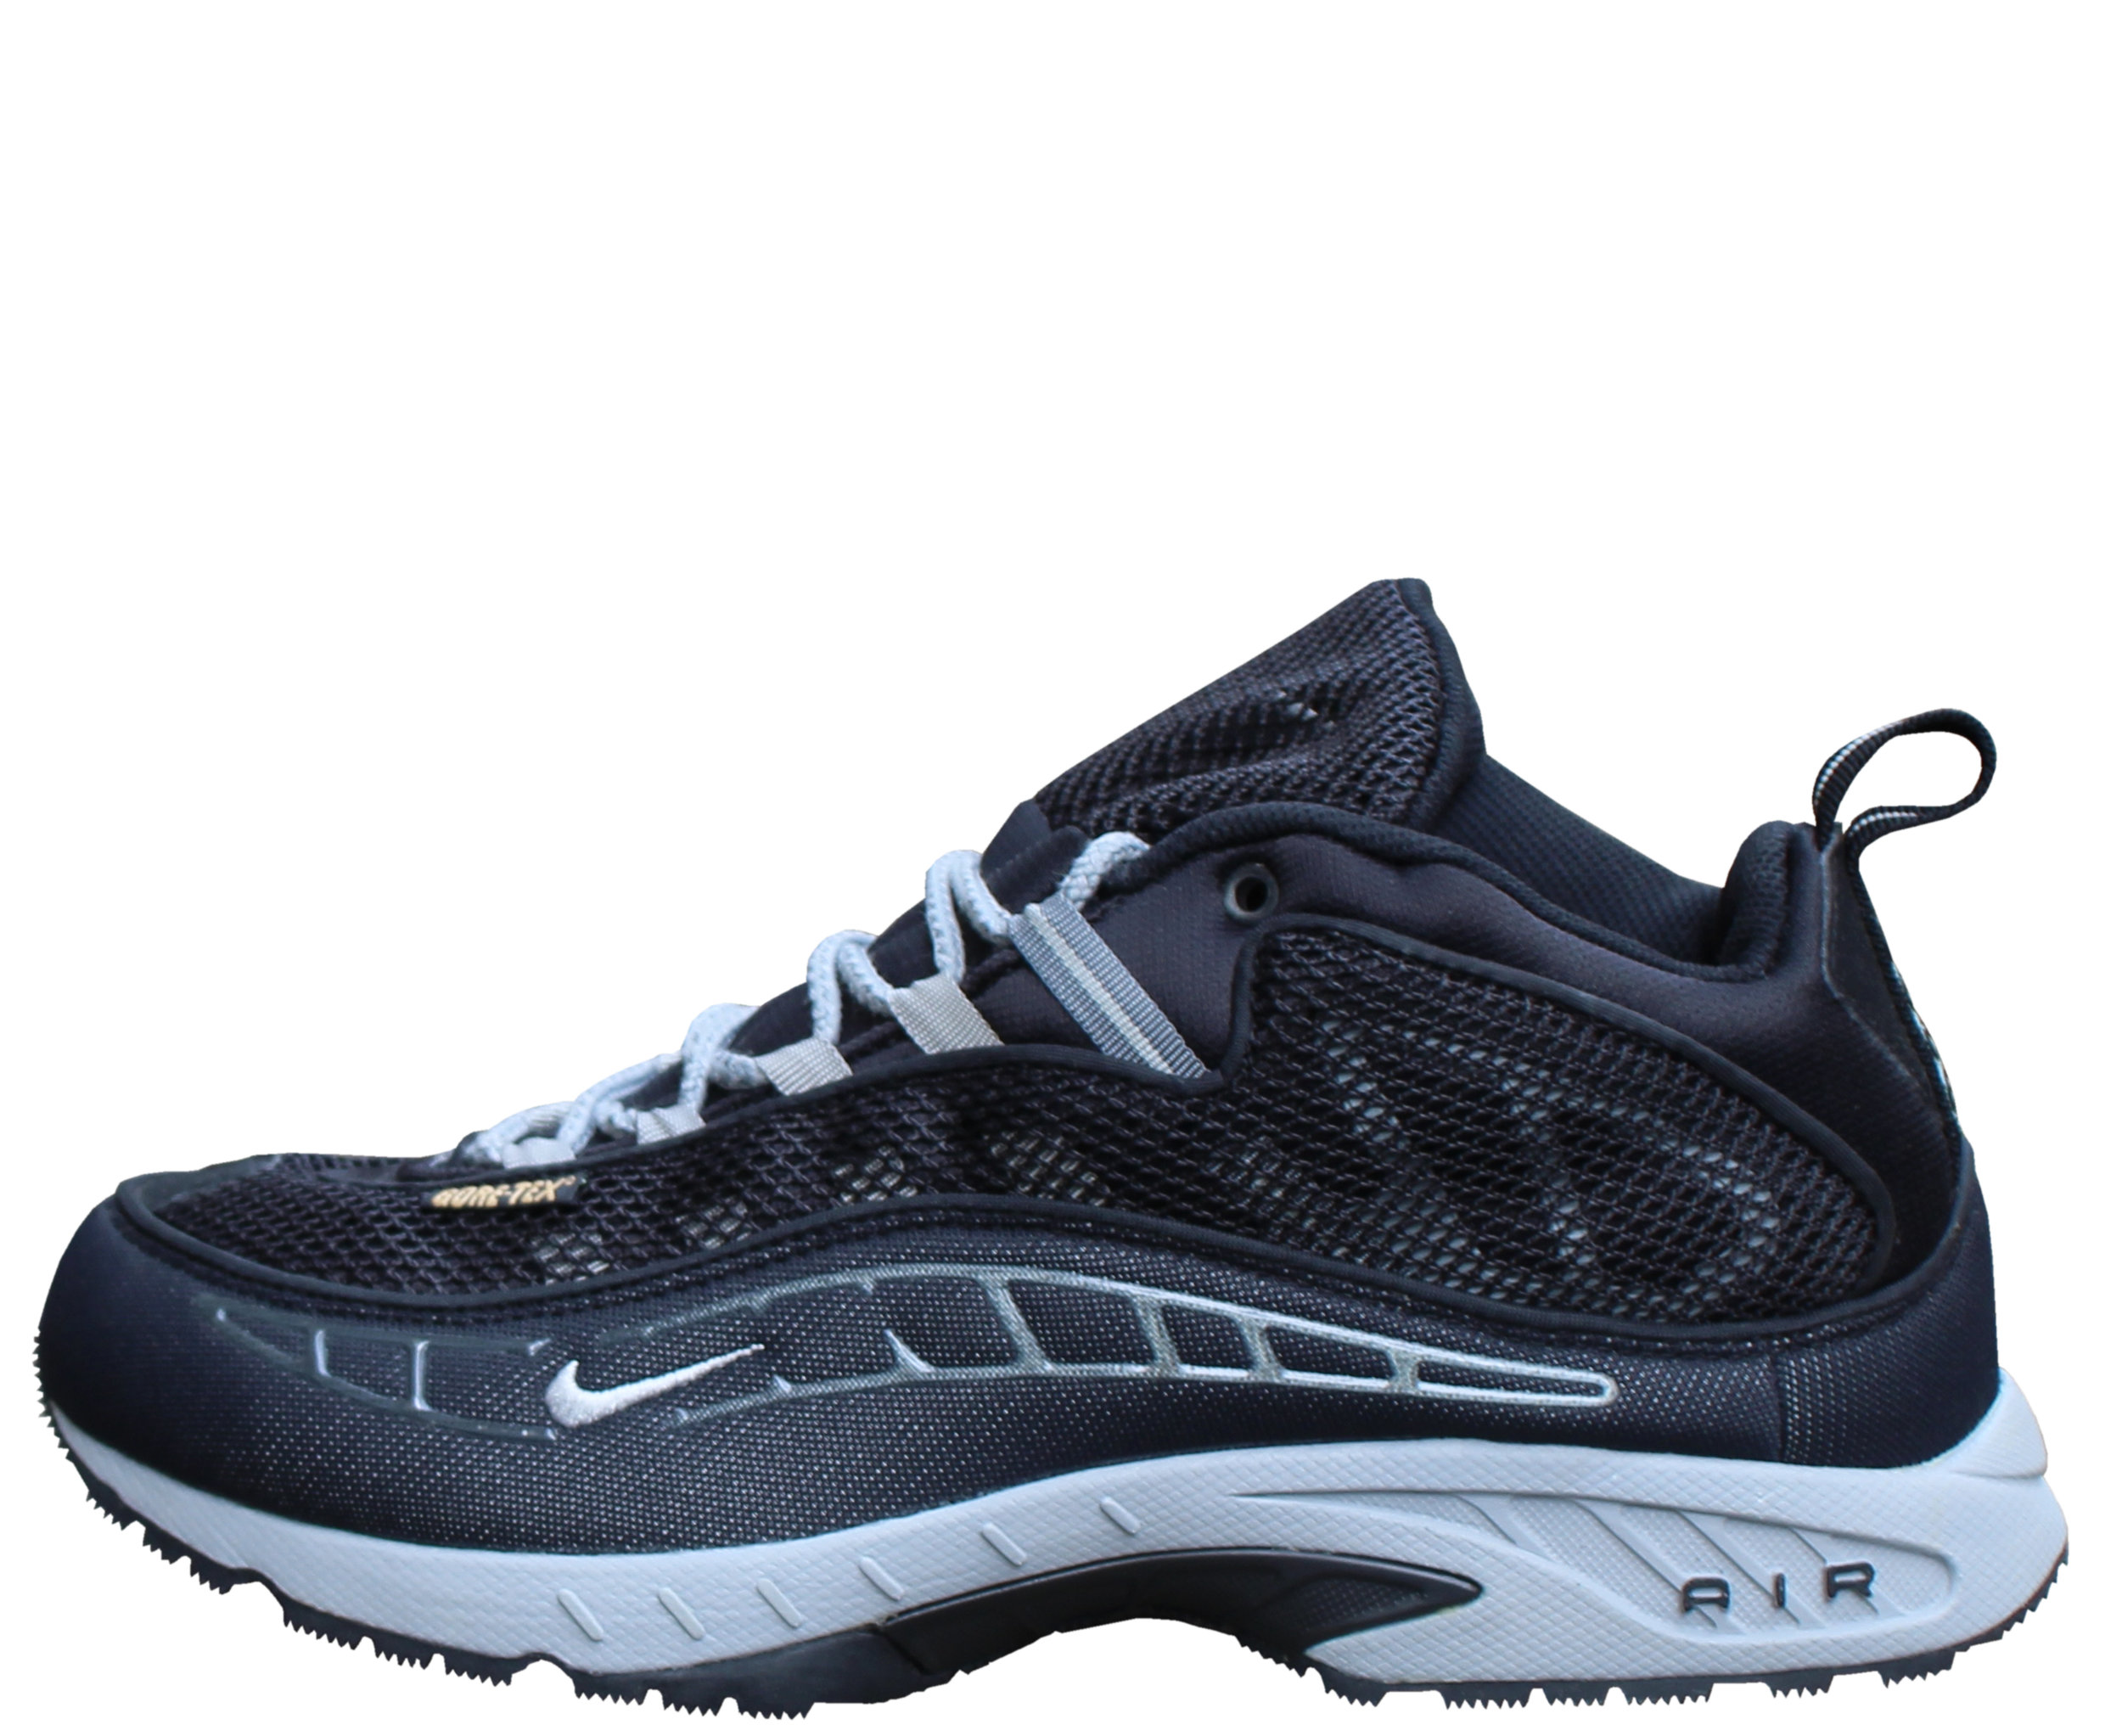 wholesale dealer 0e119 bf455 Nike Air Famished G Black / Medium Grey Graphite (Size 9.5) DS — Roots